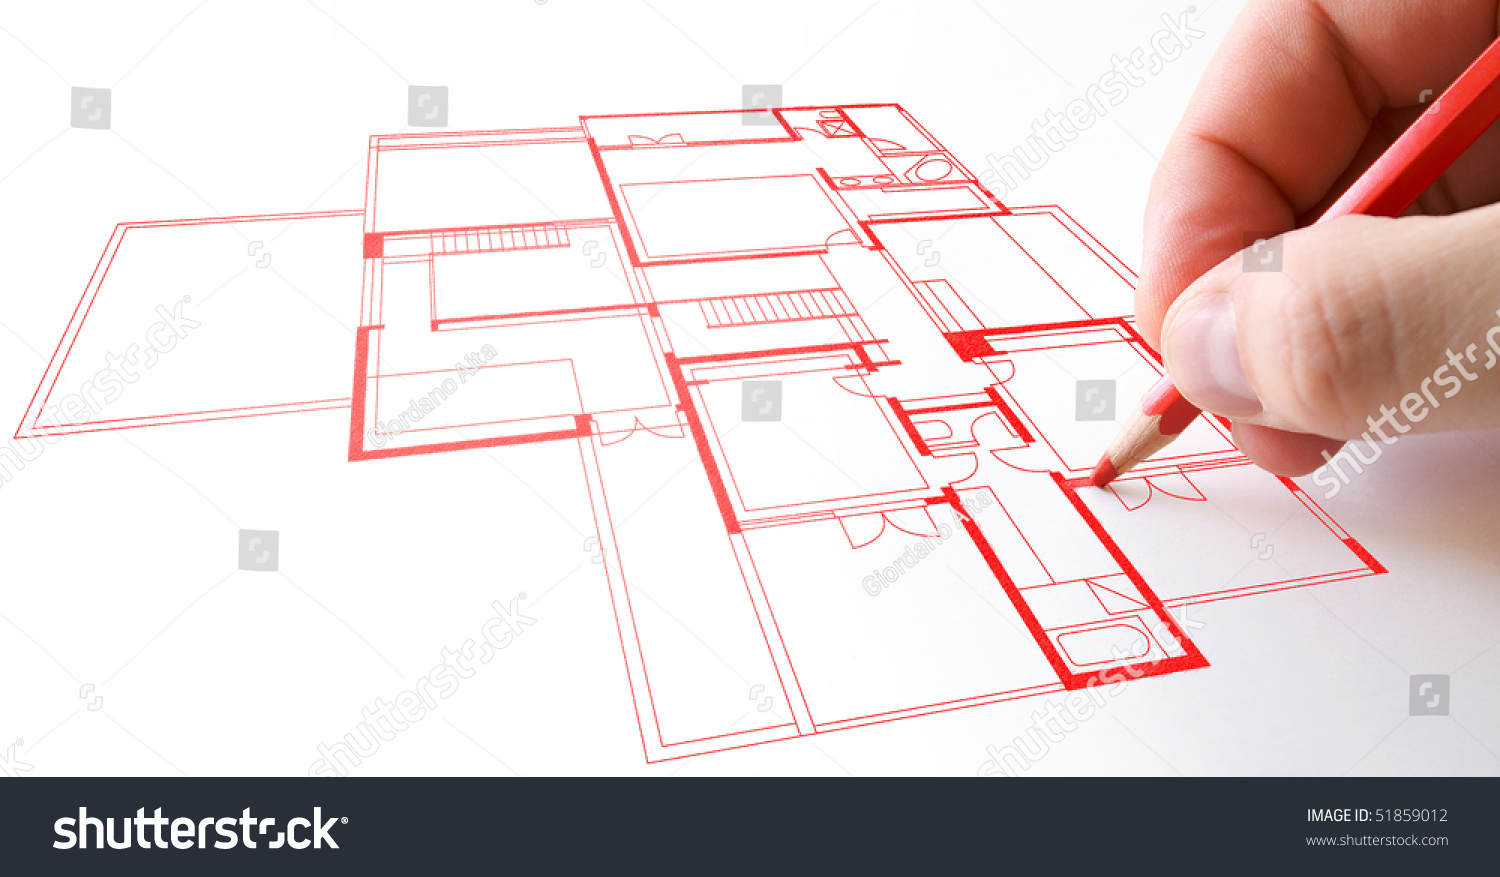 House Plan Drawing With Red Pencil On Paper Stock Photo    House plan drawing   red pencil on paper Preview  Save to a lightbox